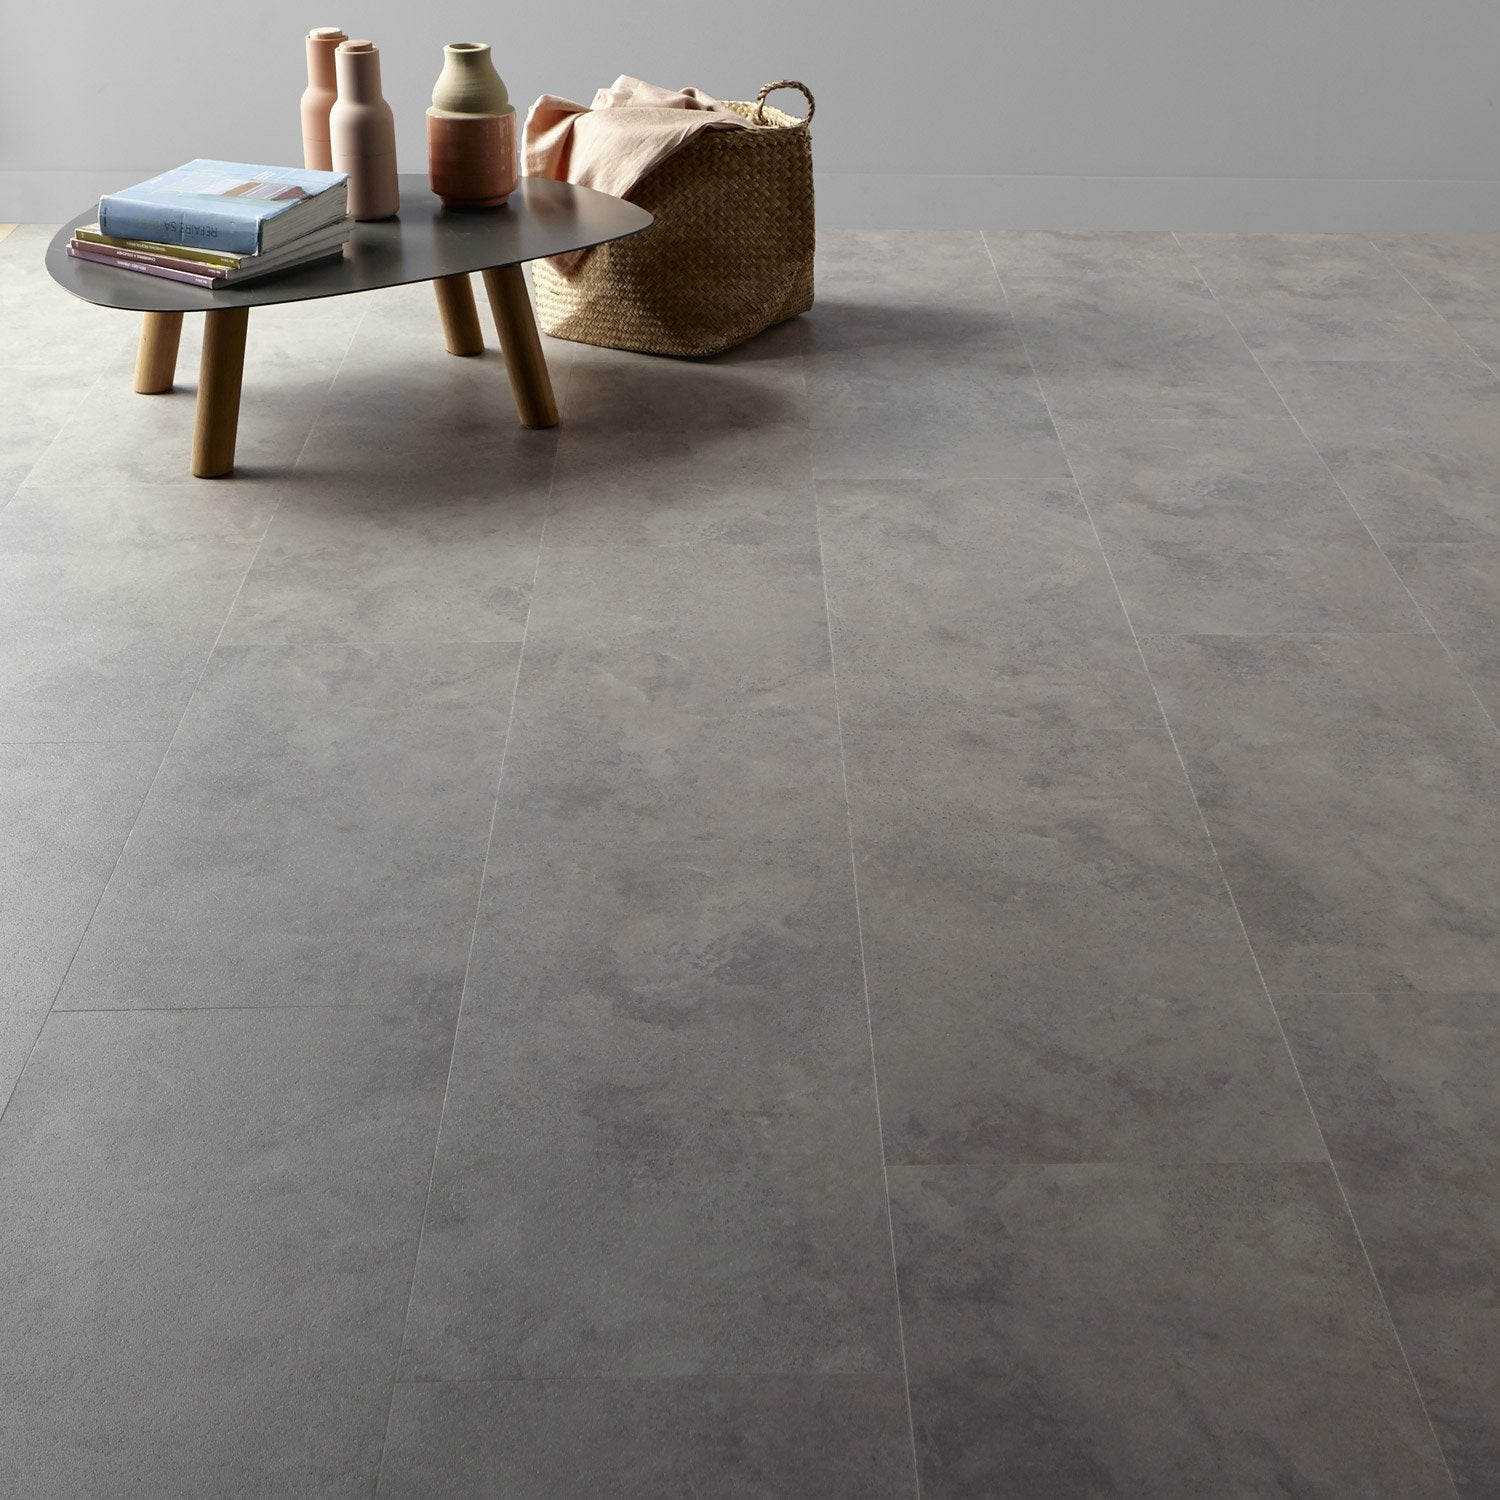 Dalle pvc clipsable taupe flagstone senso lock gerflor - Dalle clipsable leroy merlin ...